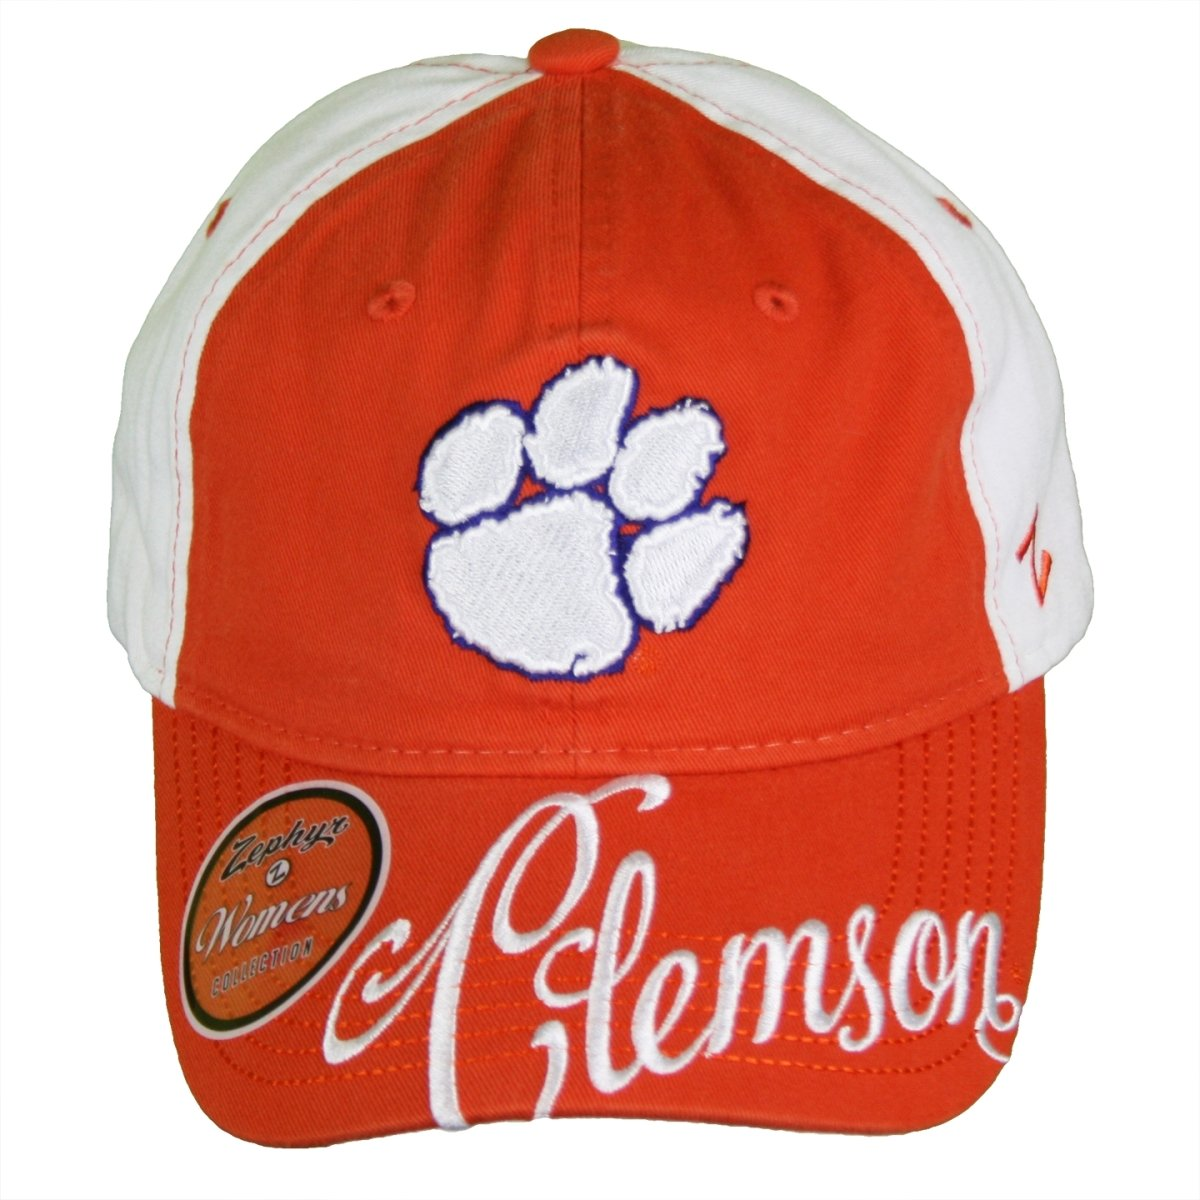 Clemson Tigers Treble Adjustable Baseball Cap With White Paw and Script on the Bill - Mr. Knickerbocker